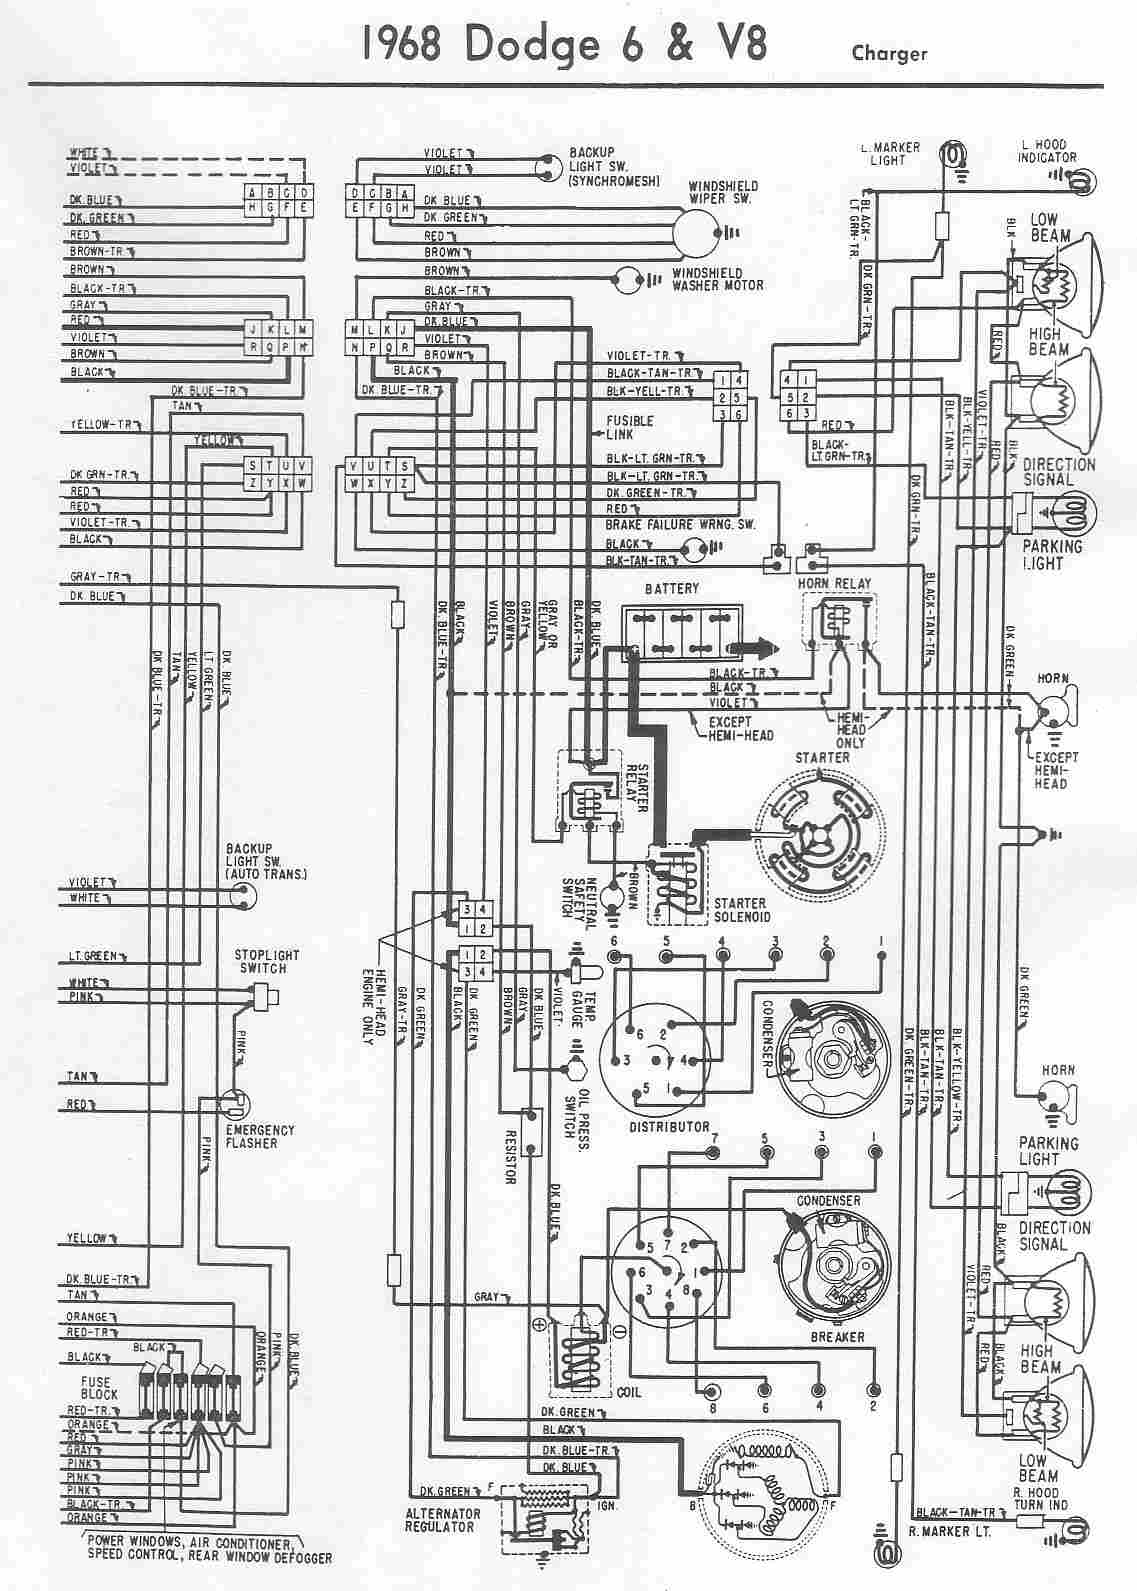 1972 dodge dart dash wiring harness 35 wiring diagram images wiring diagrams readyjetset co 1965 buick [ 1137 x 1591 Pixel ]